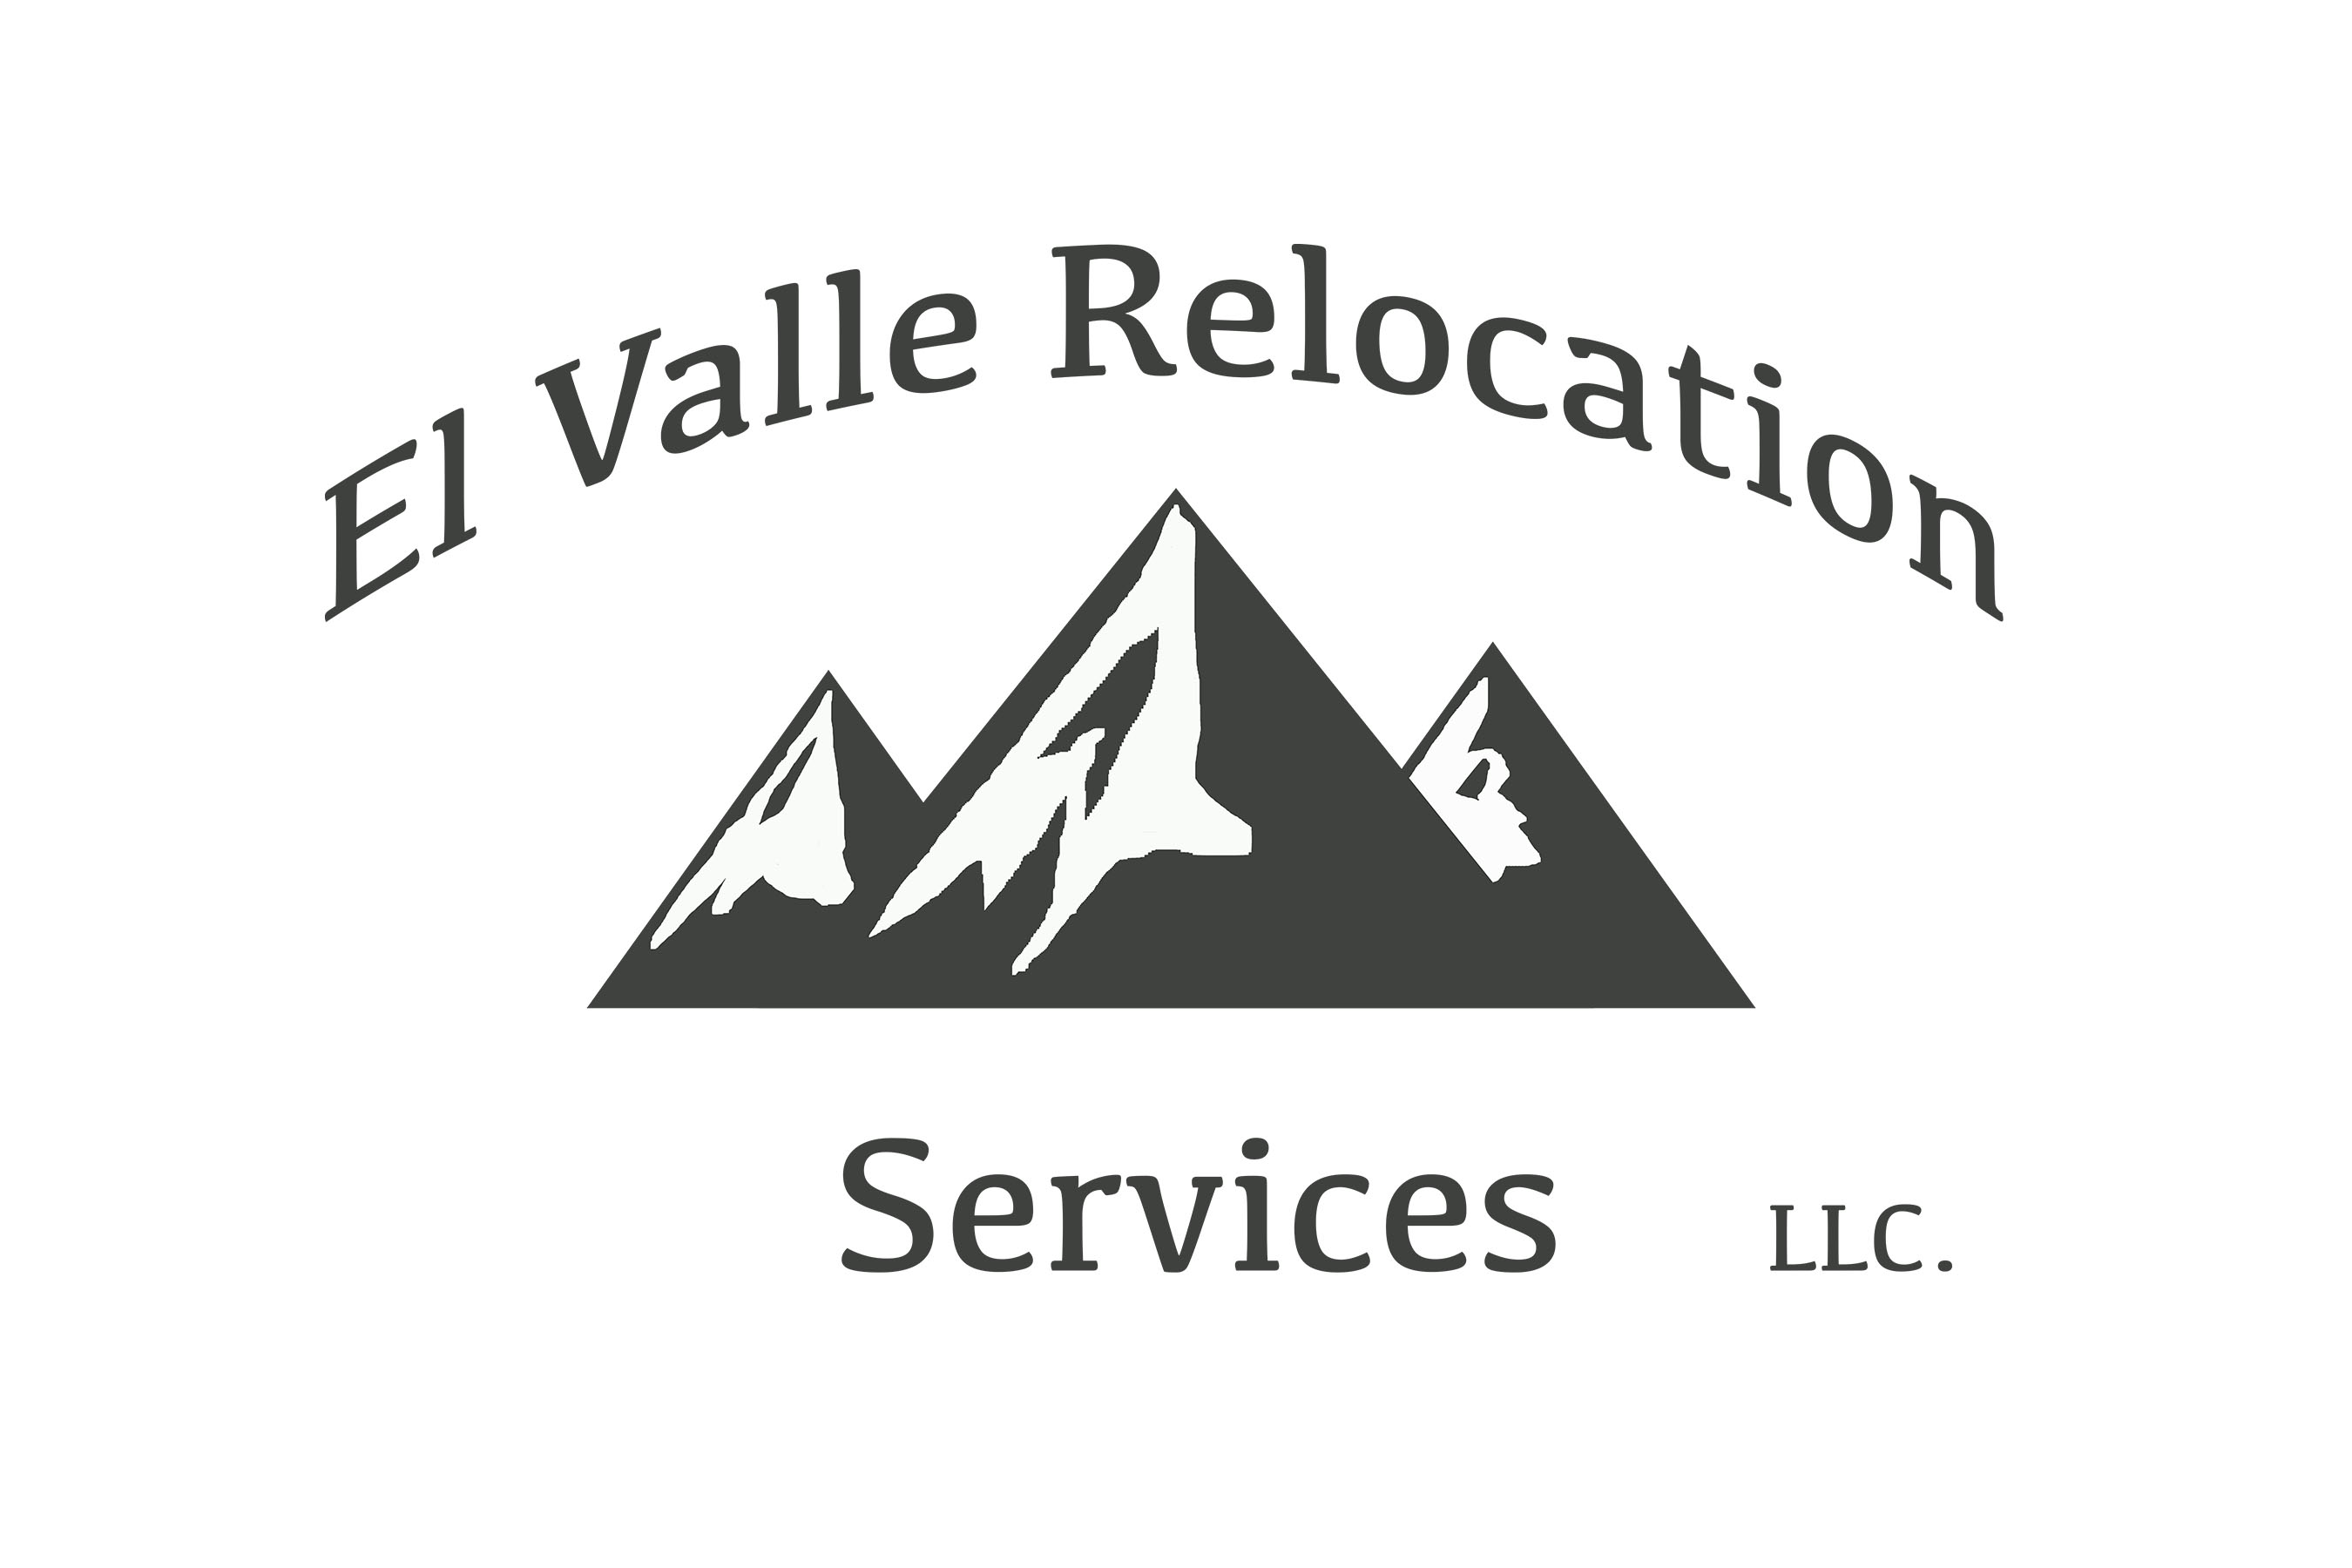 El Valle Relocation Services